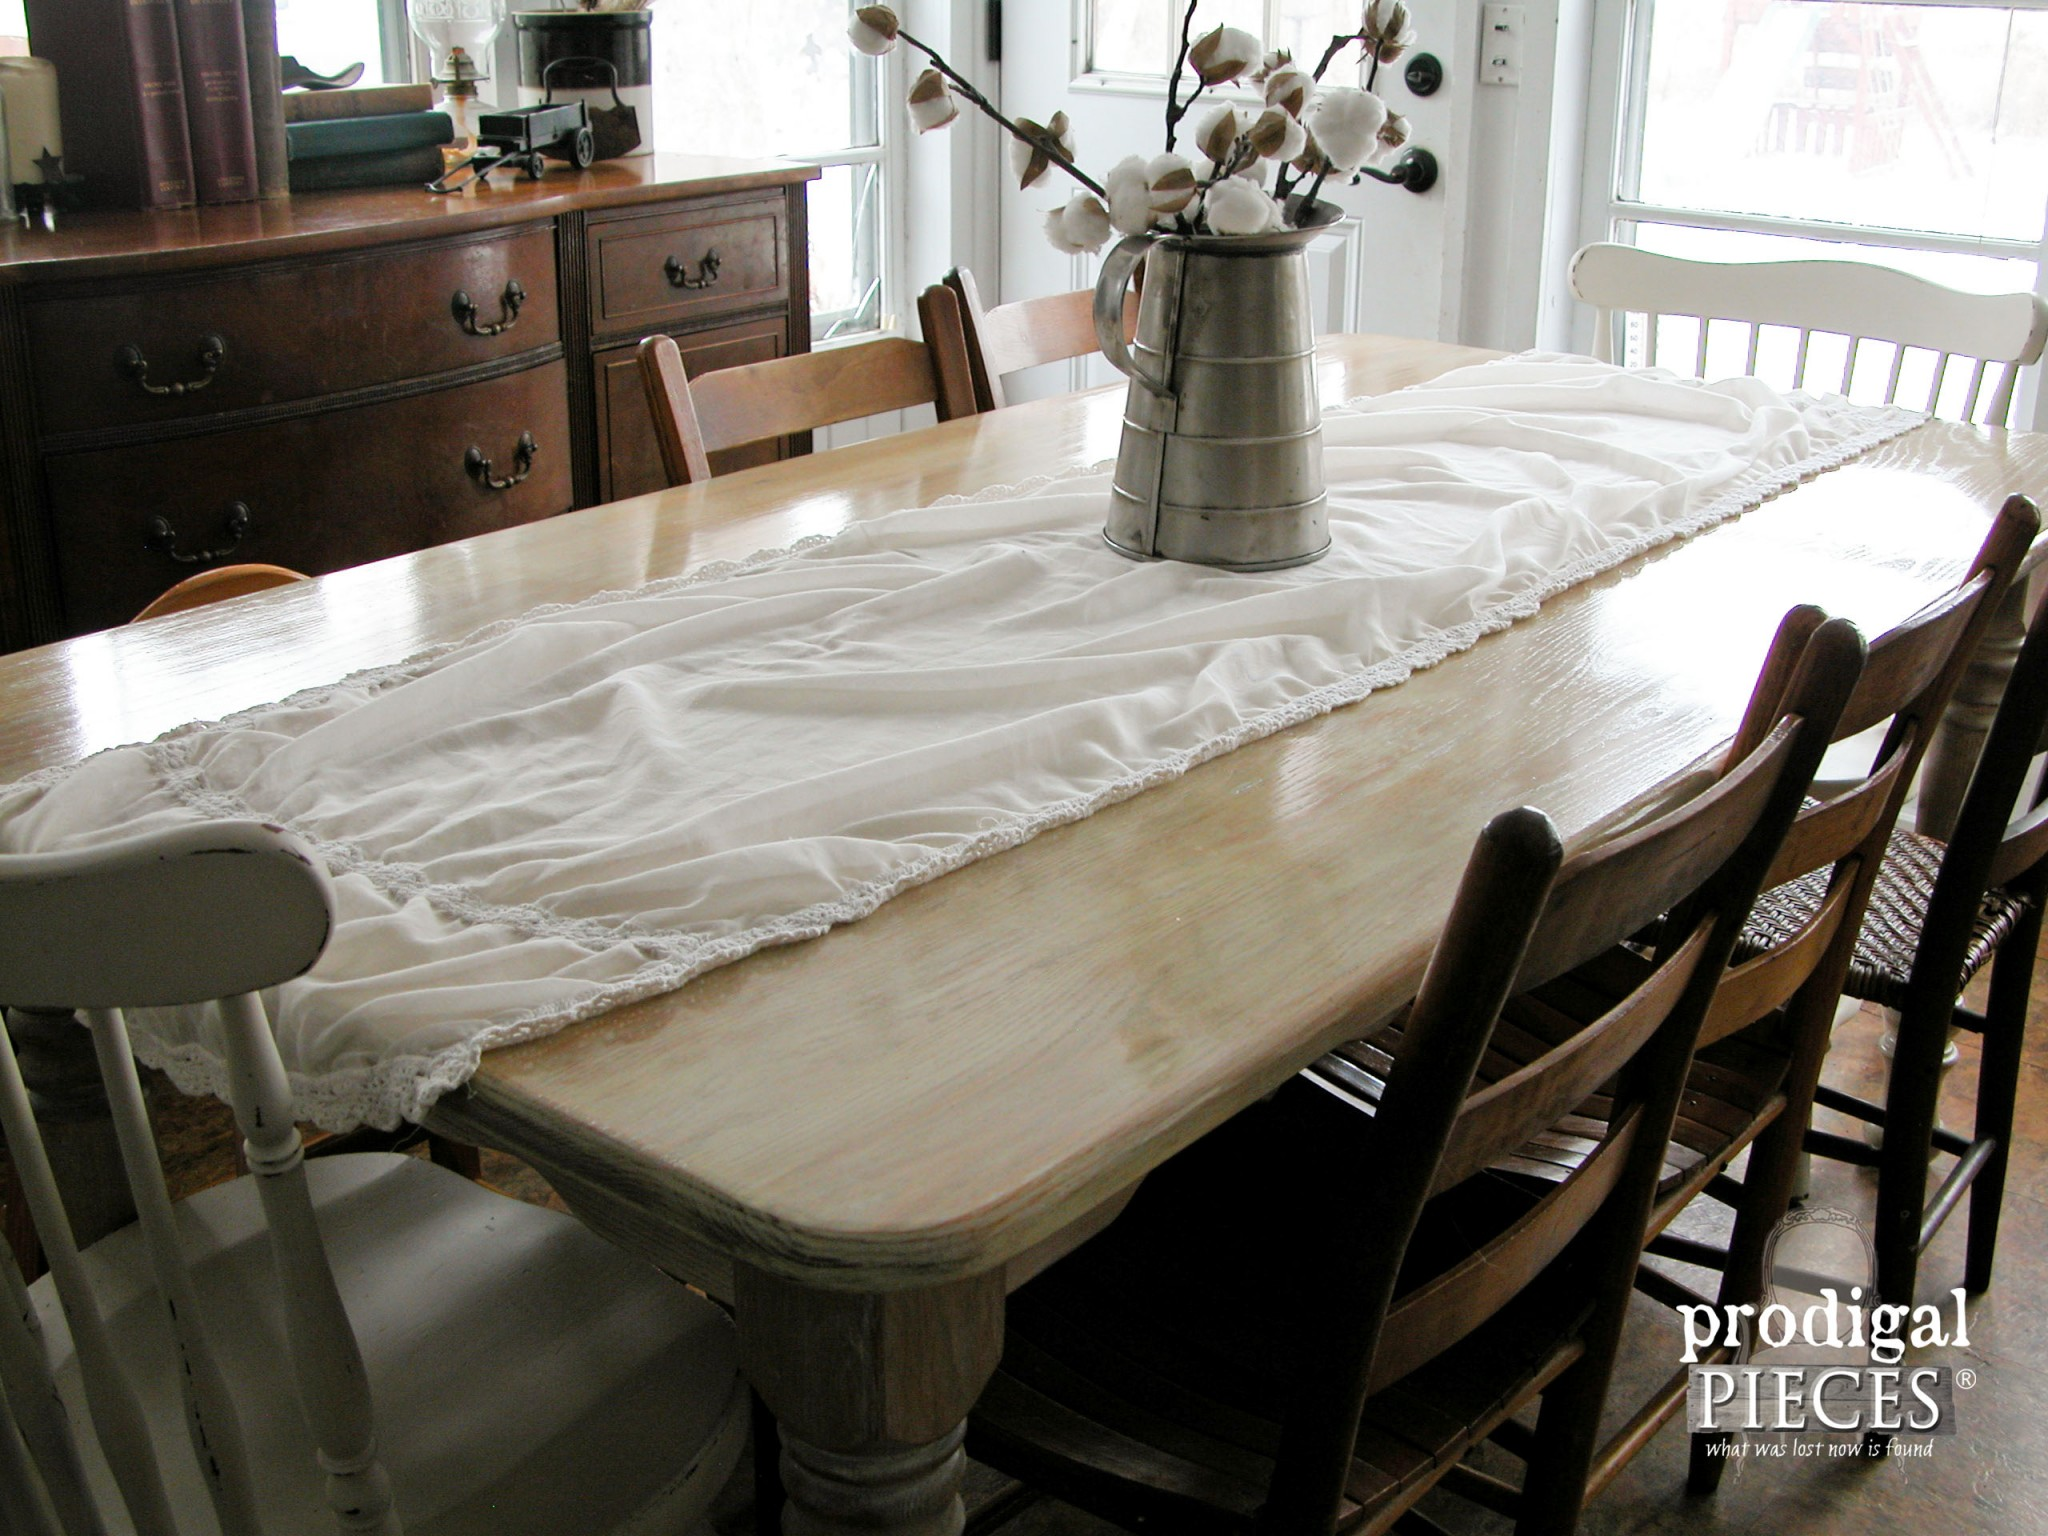 whitewashed limewashed wood whitewash kitchen table Corner View Whitewashed Limewashed Farmhouse Table by Prodigal Pieces www prodigalpieces